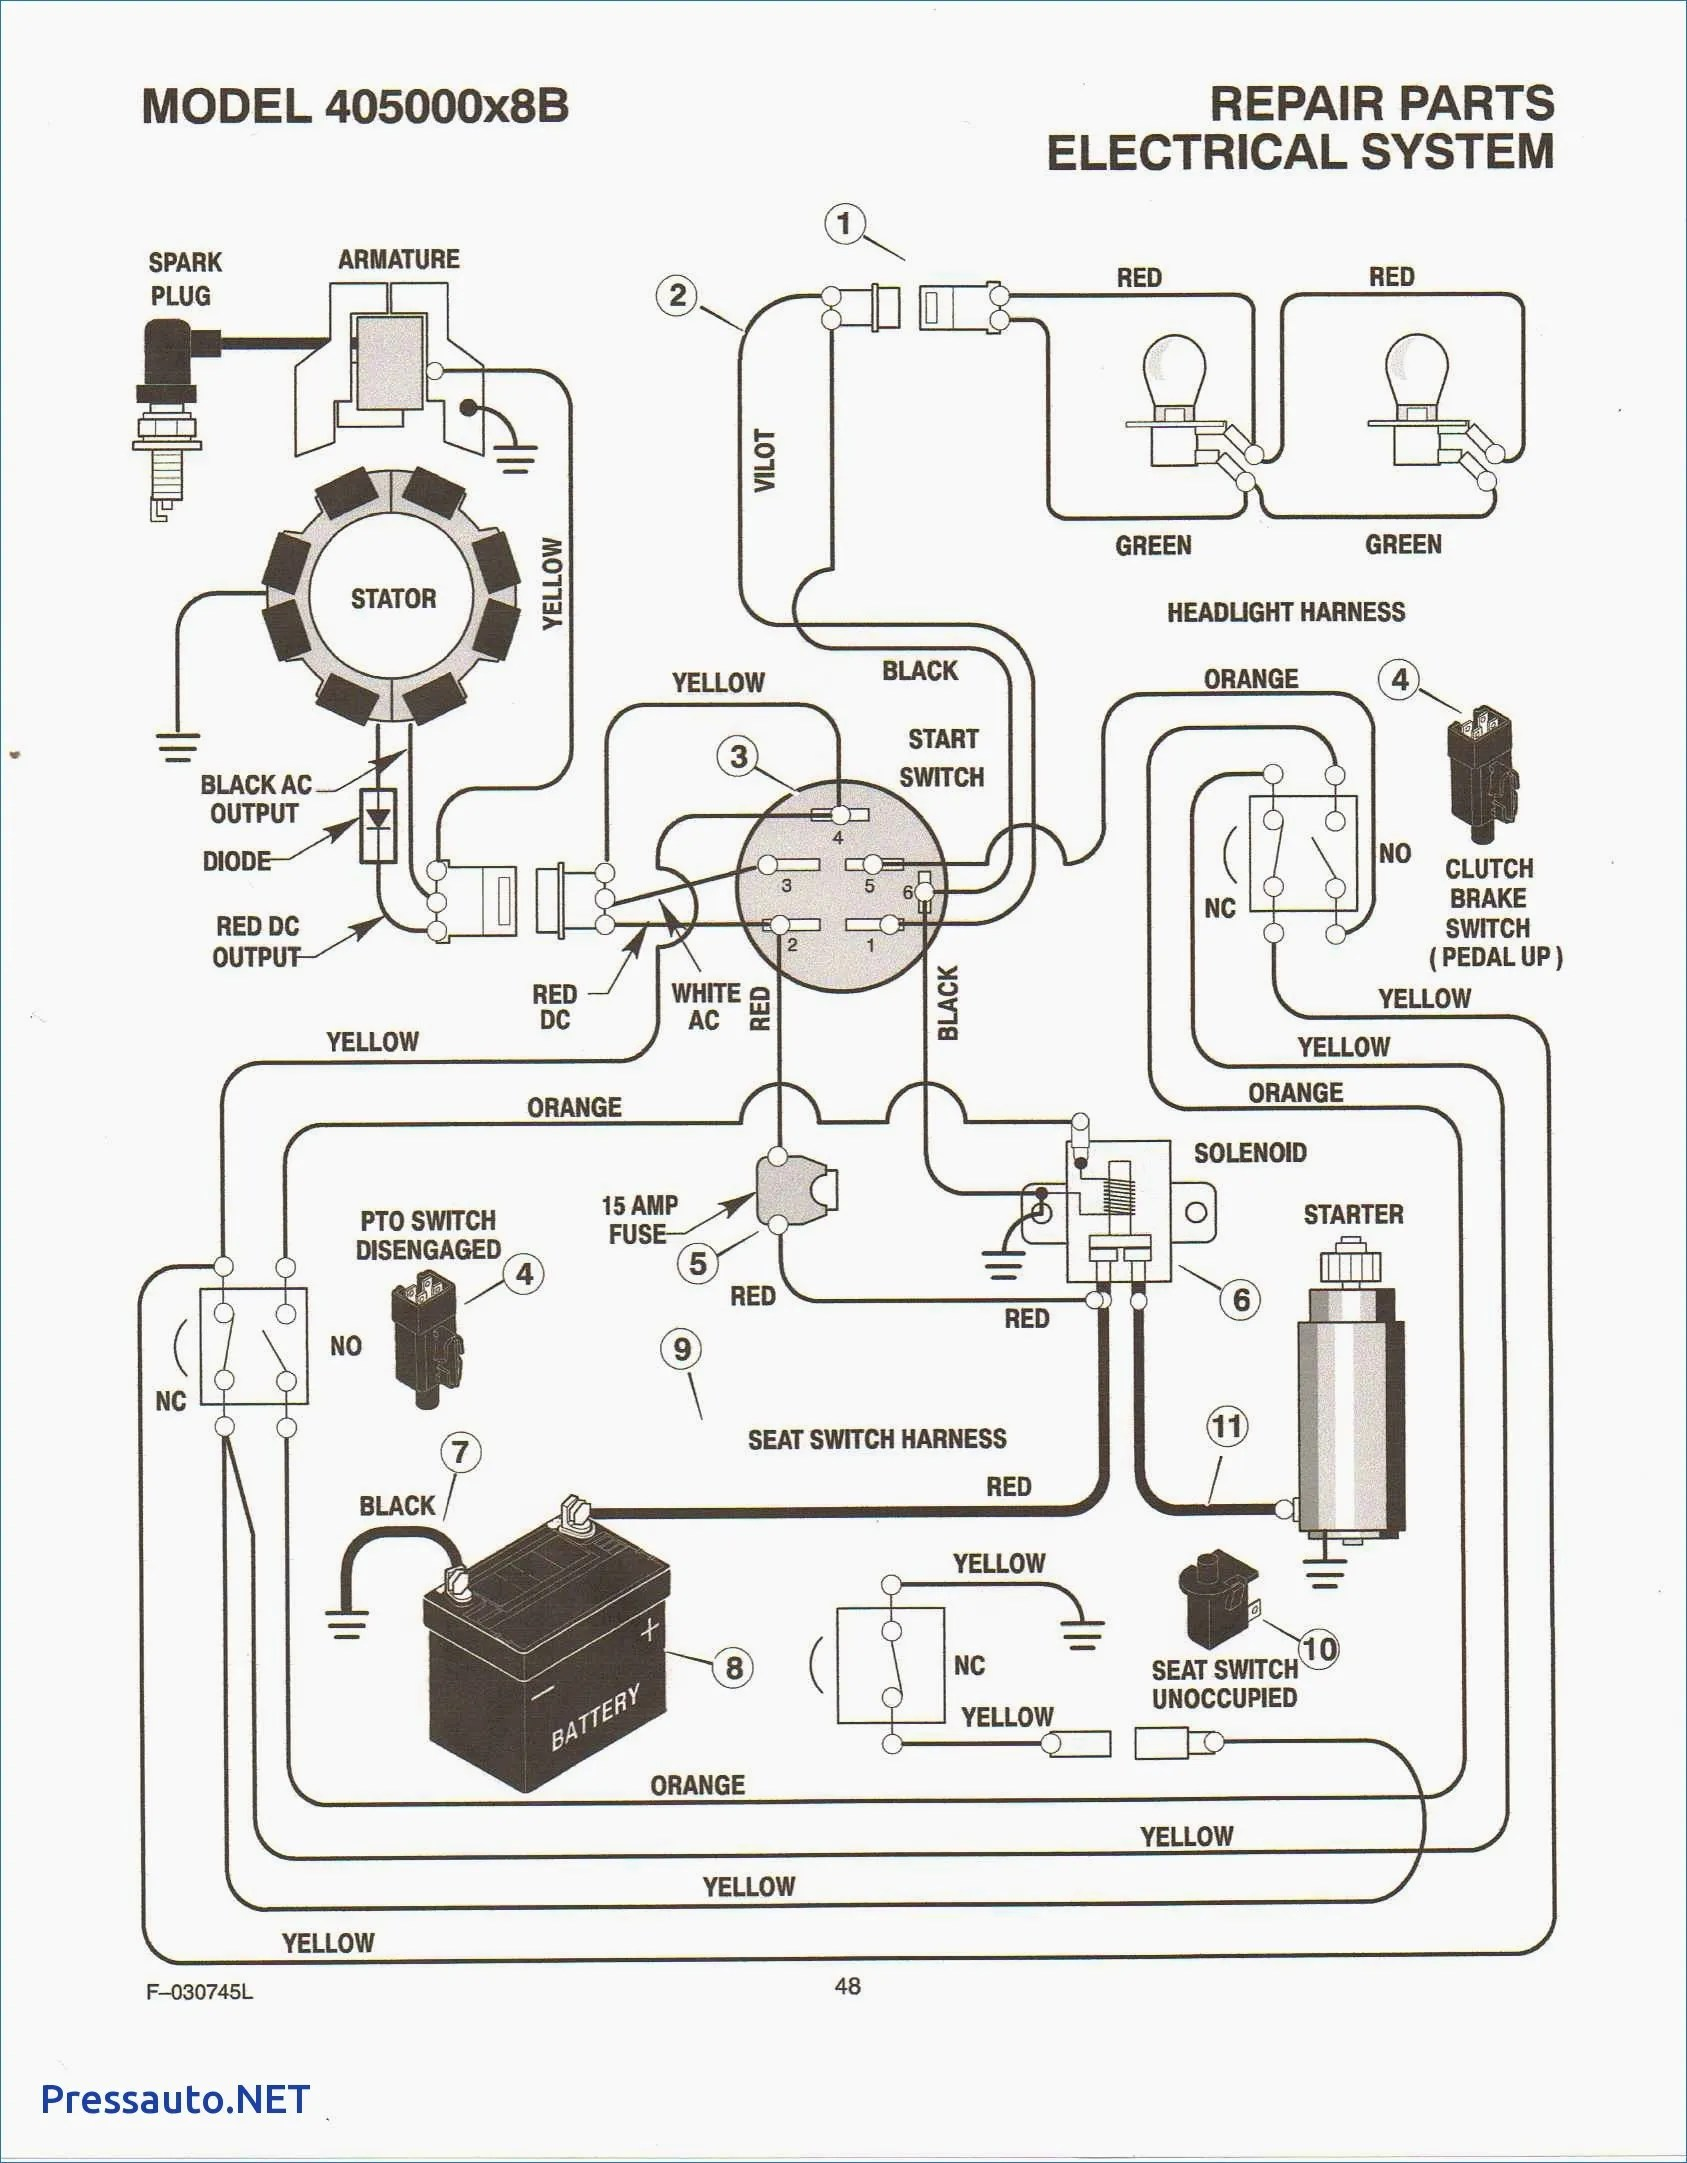 hight resolution of briggs and stratton 11 hp wiring diagram residential electrical briggs and stratton 18 5 engine diagram briggs